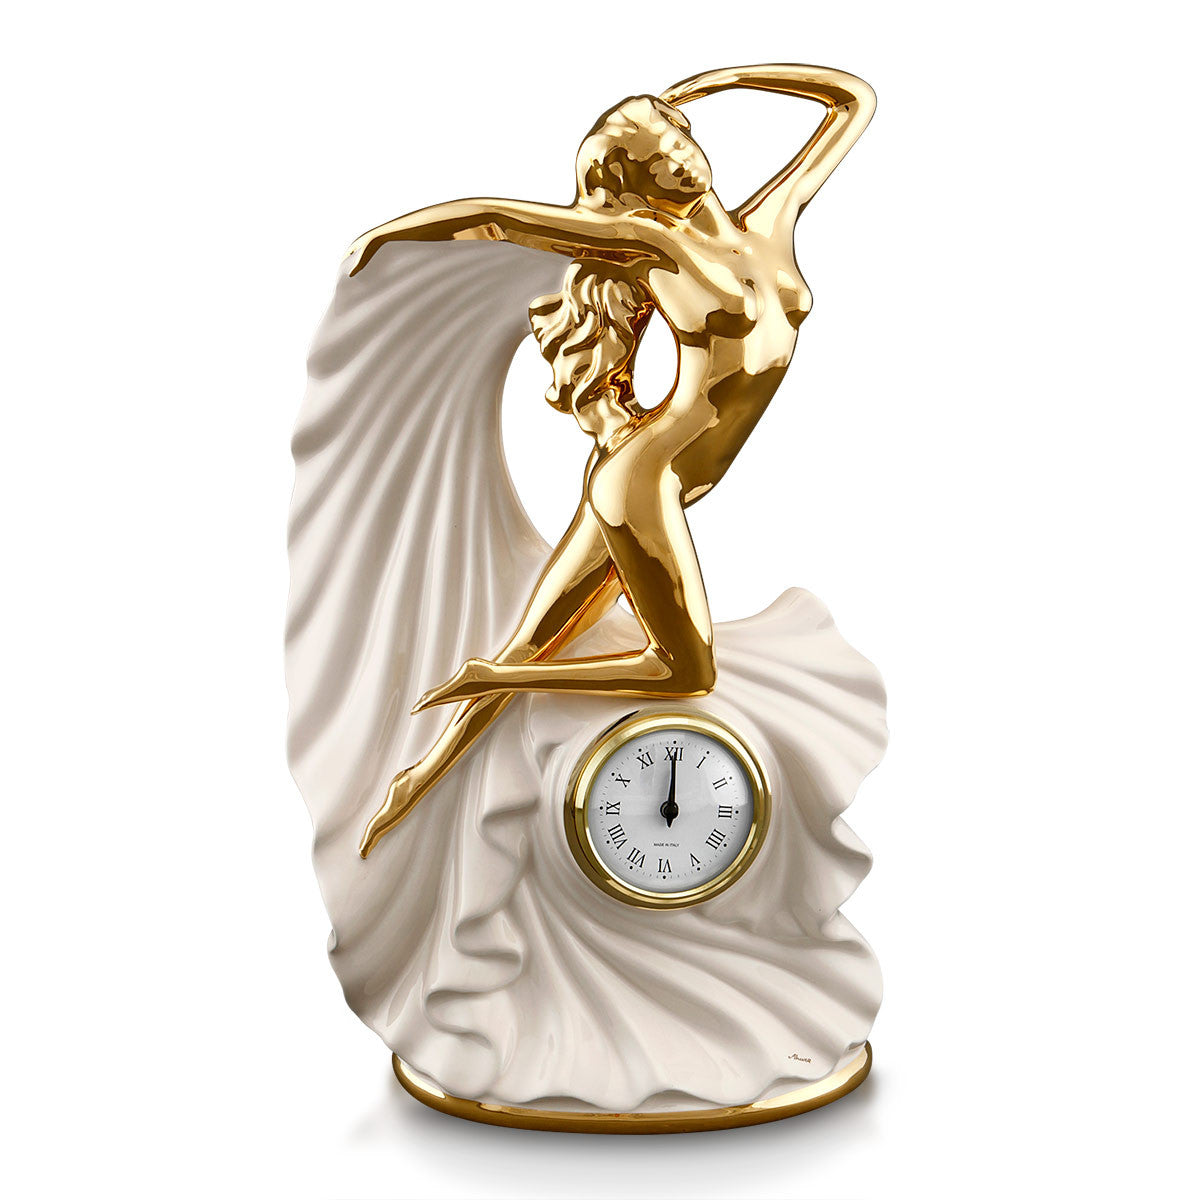 ceramic porcelain ivory clock woman finished in pure gold handmade in Italy